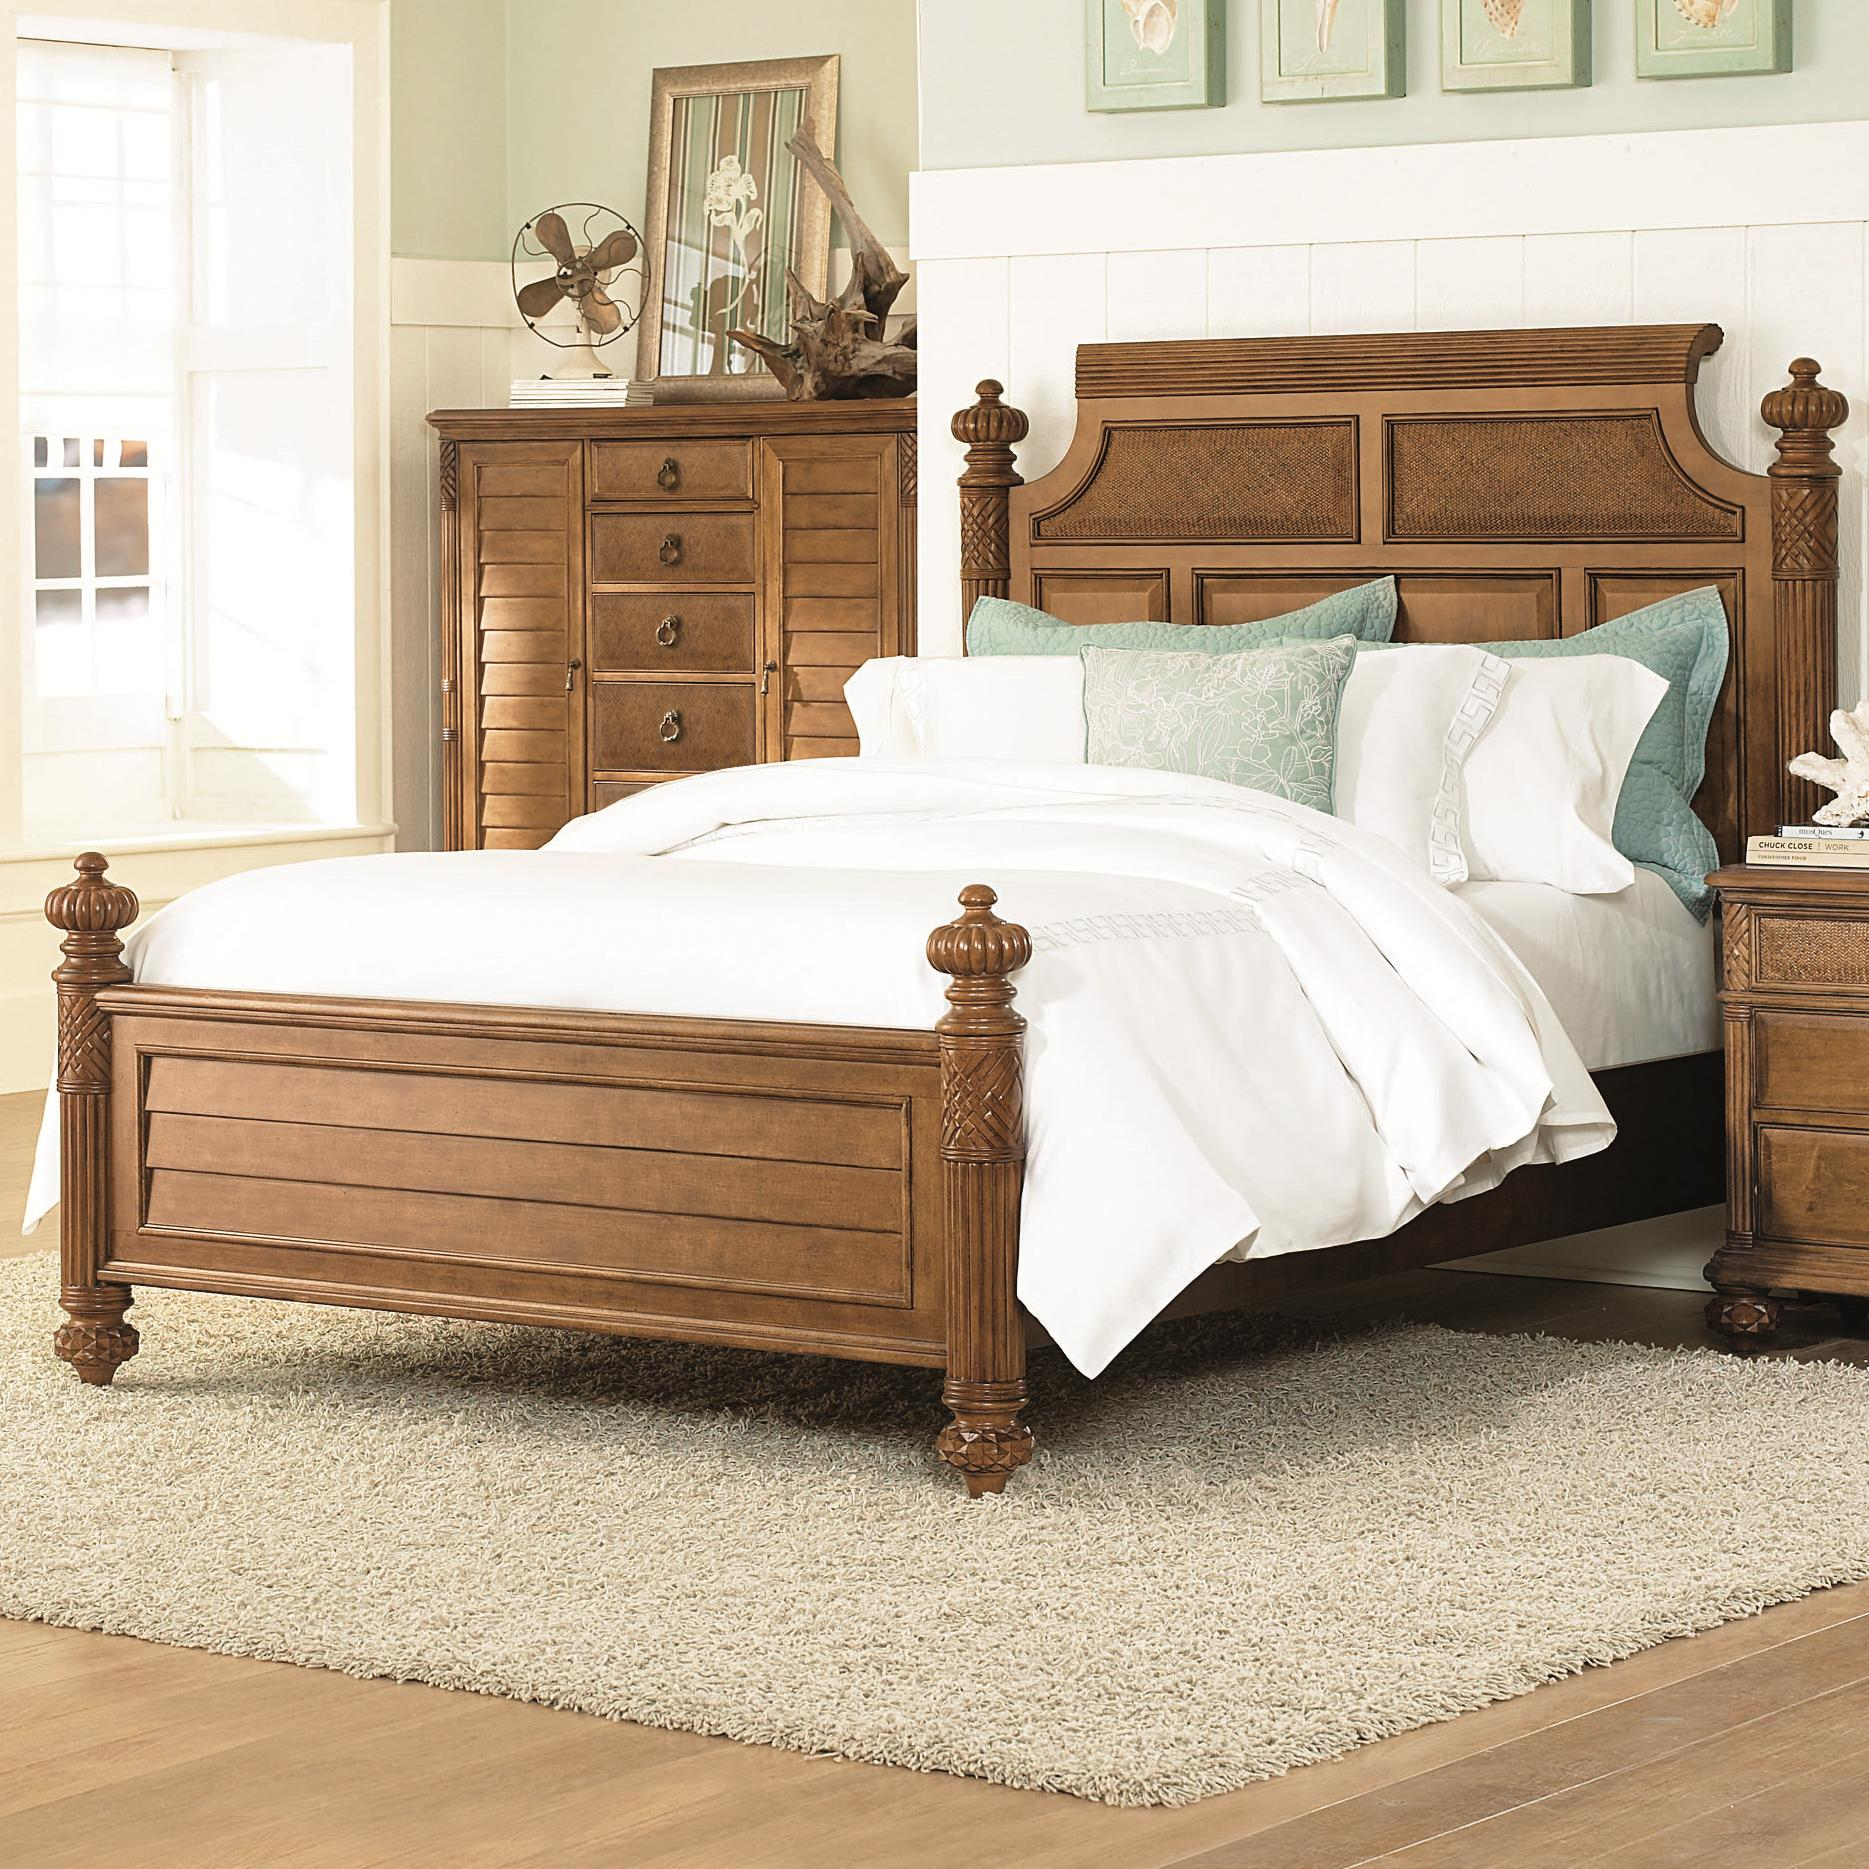 All products bedroom beds amp headboards headboards - Queen Size Island Headboard Footboard Bed With Woven Panels Carved Textural Details